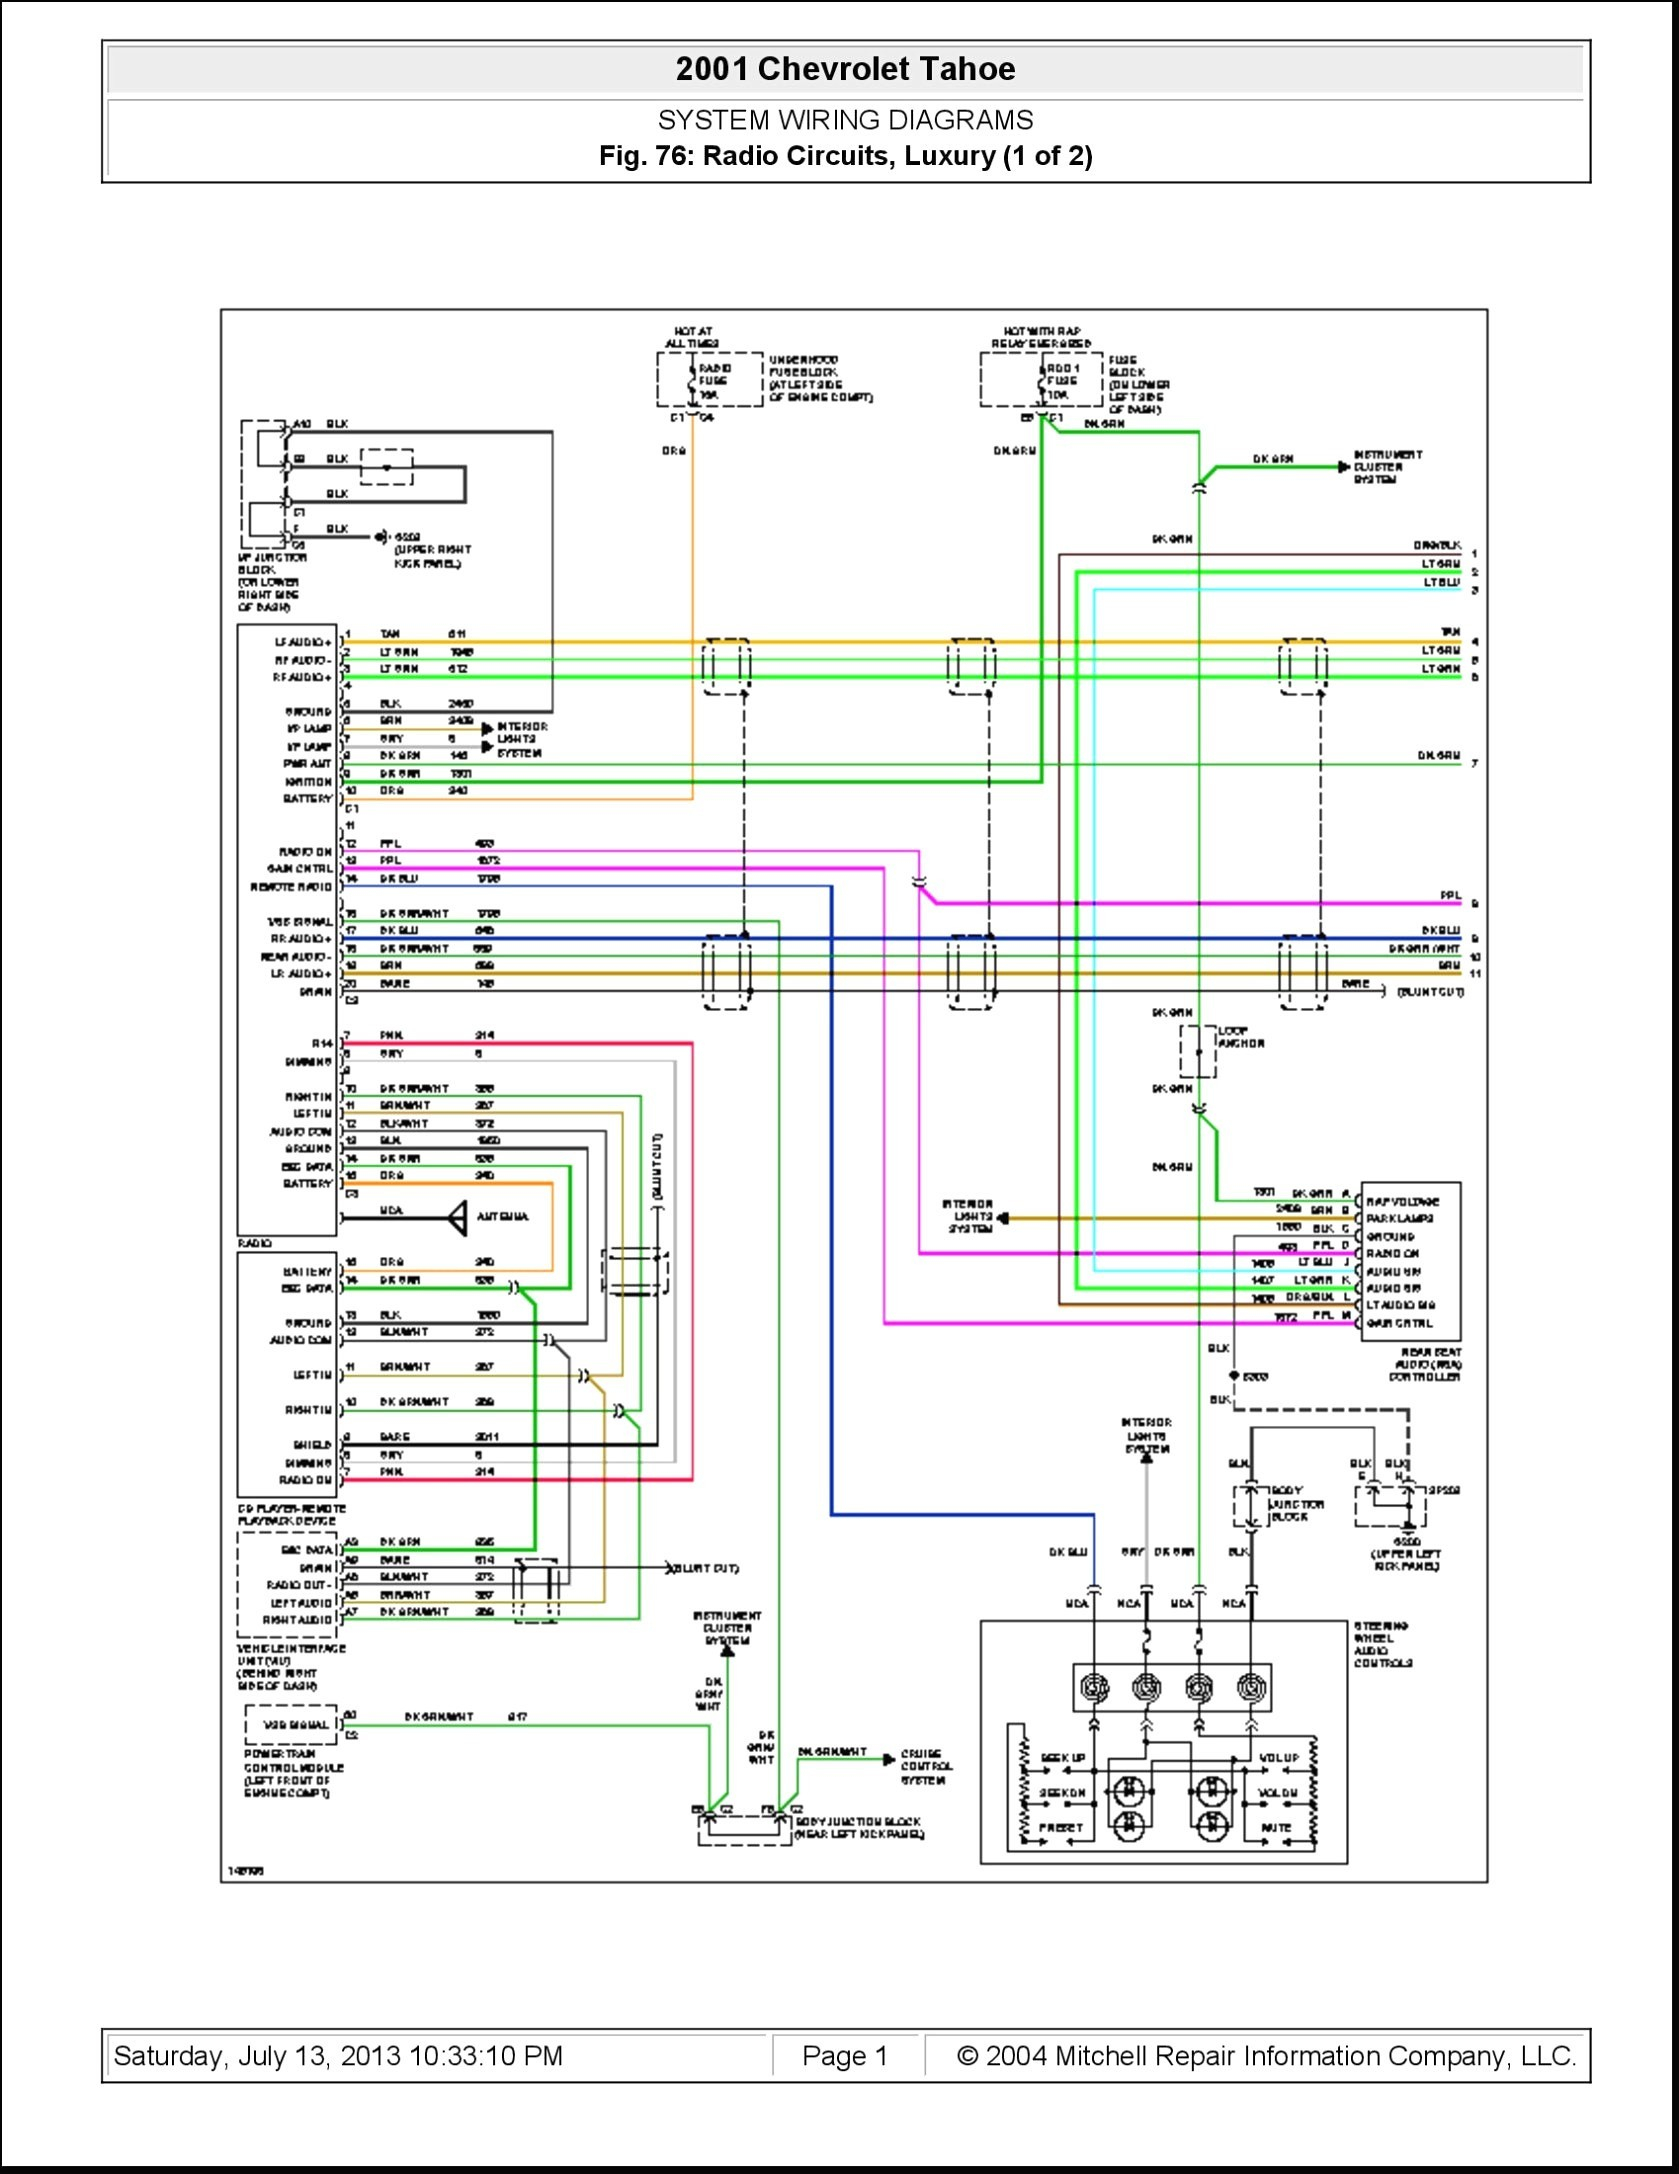 2002 chevy tahoe radio wiring diagram Collection-2004 Chevy Impala Radio Wiring Diagram originalstylophone 14-k